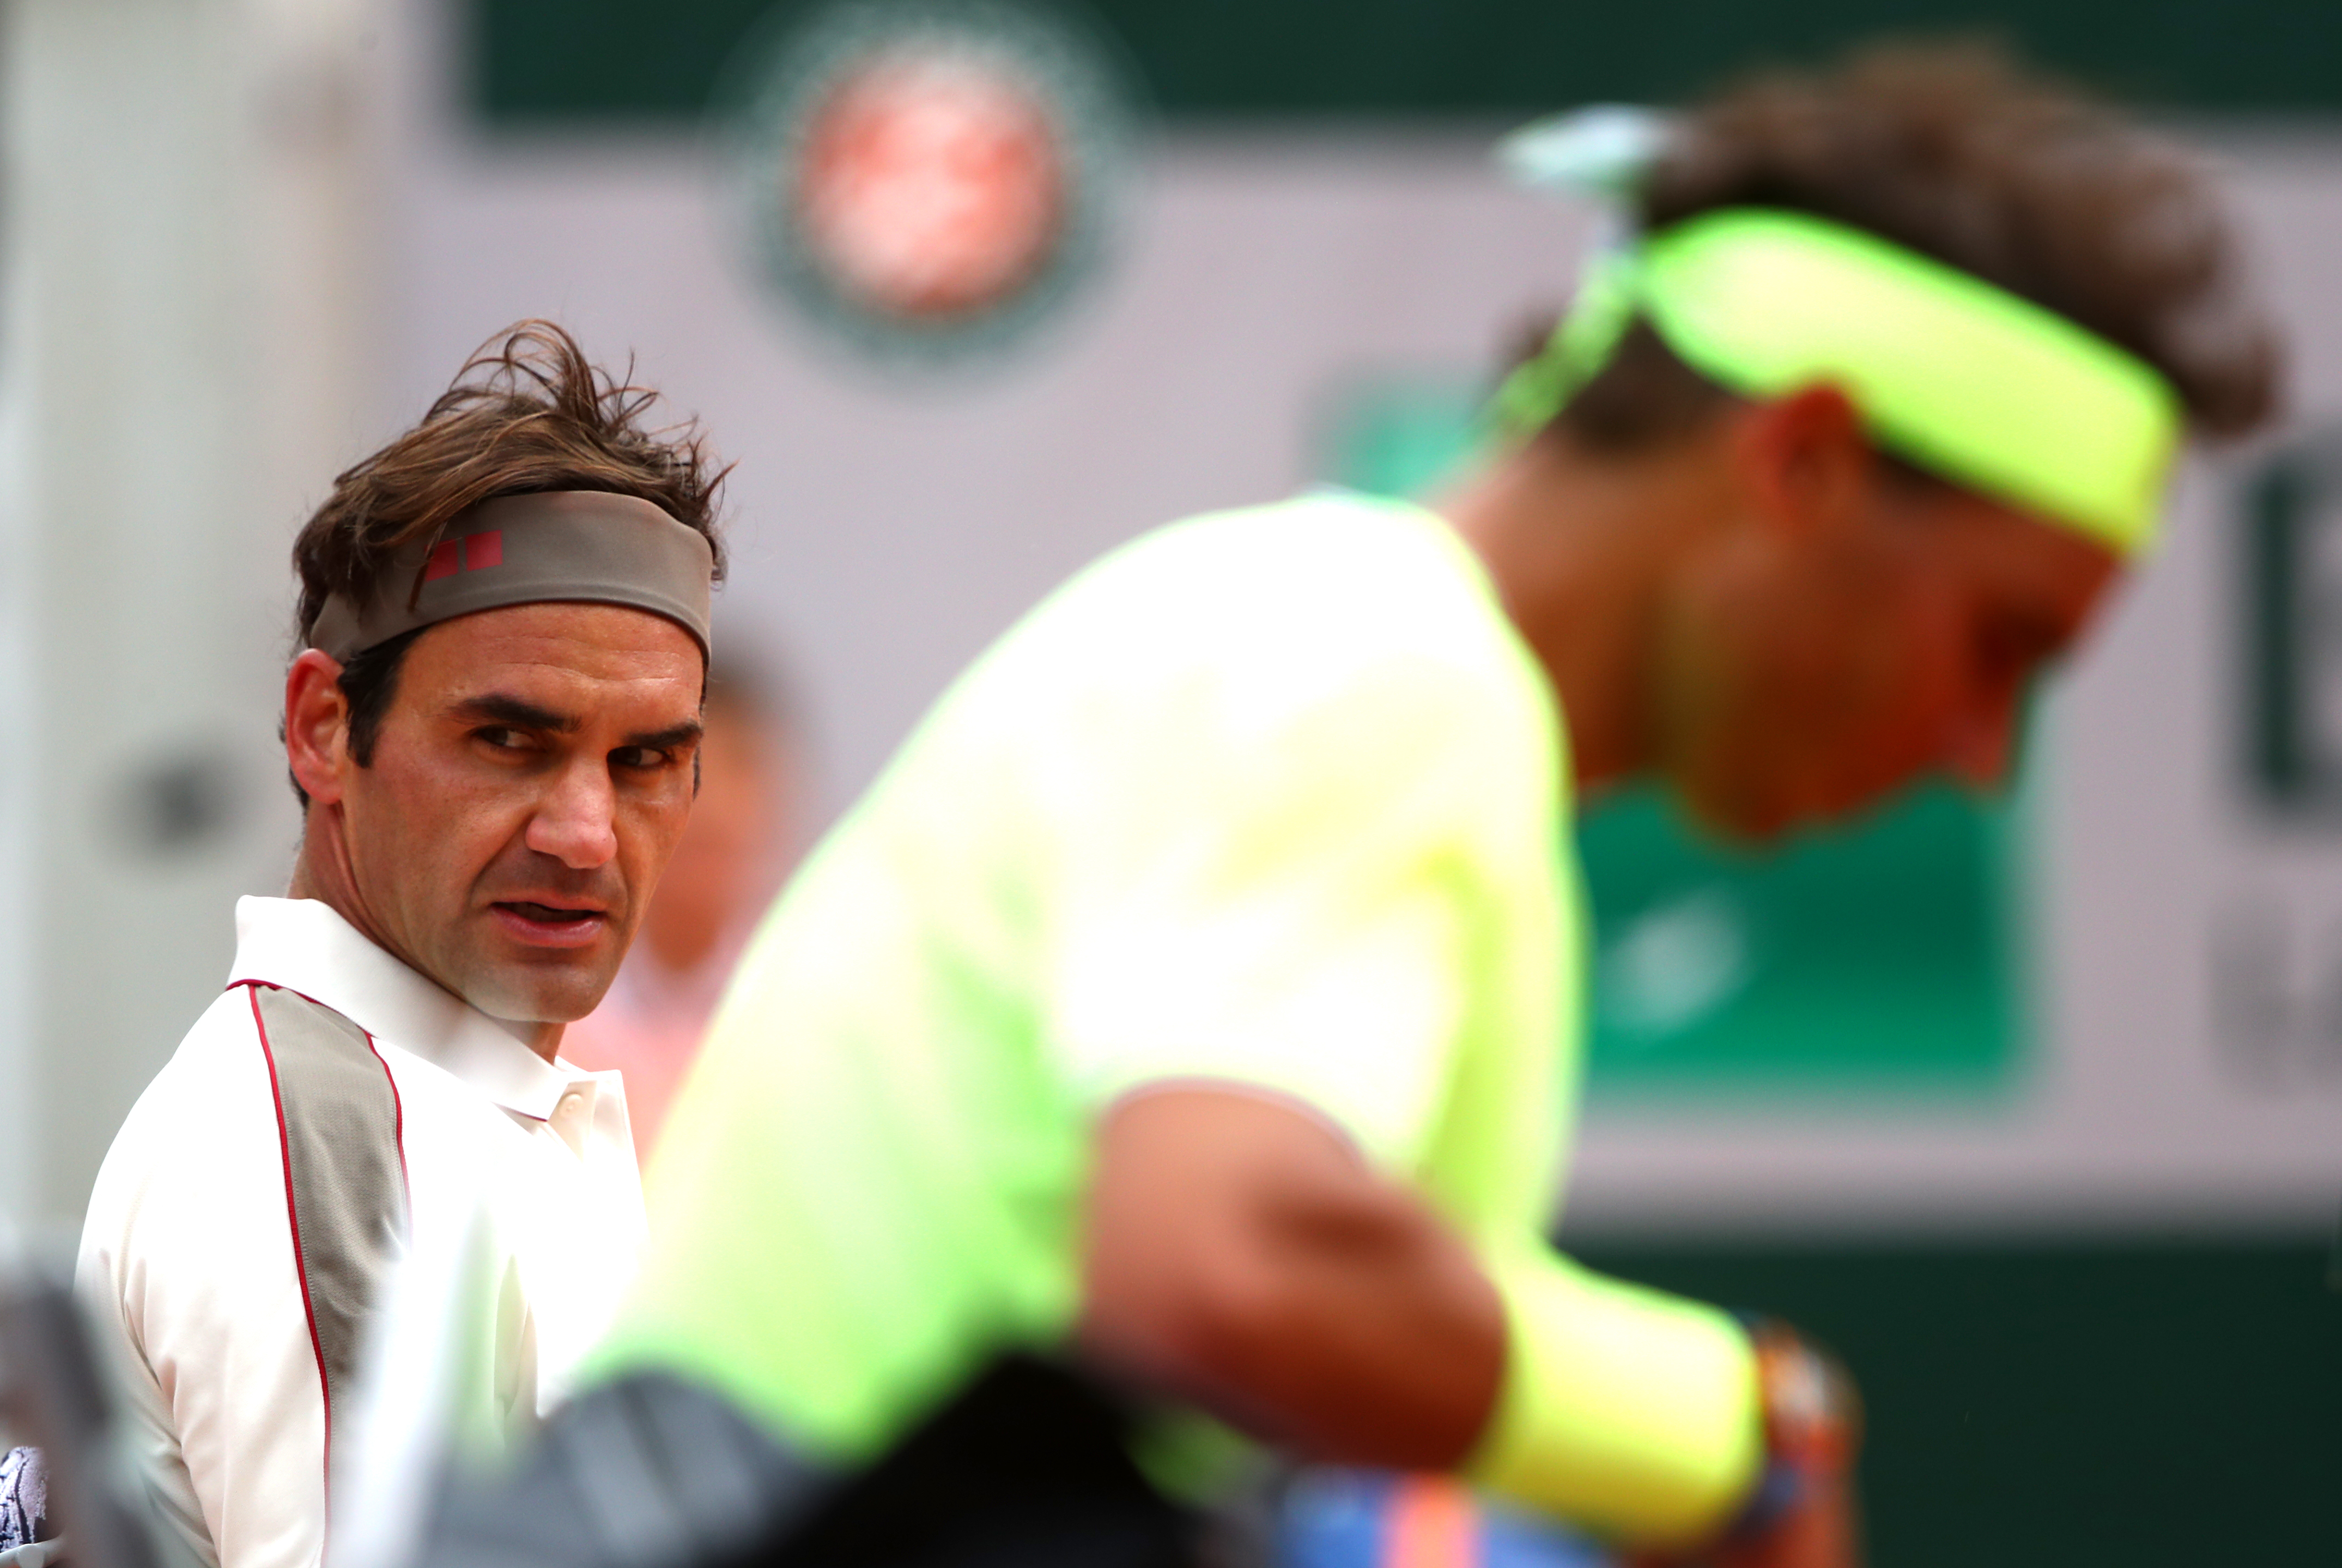 PARIS, FRANCE - JUNE 07: Rafael Nadal of Spain and Roger Federer of Switzerland in the mens singles semi-final during Day thirteen of the 2019 French Open at Roland Garros on June 07, 2019 in Paris, France. (Photo by Julian Finney/Getty Images)